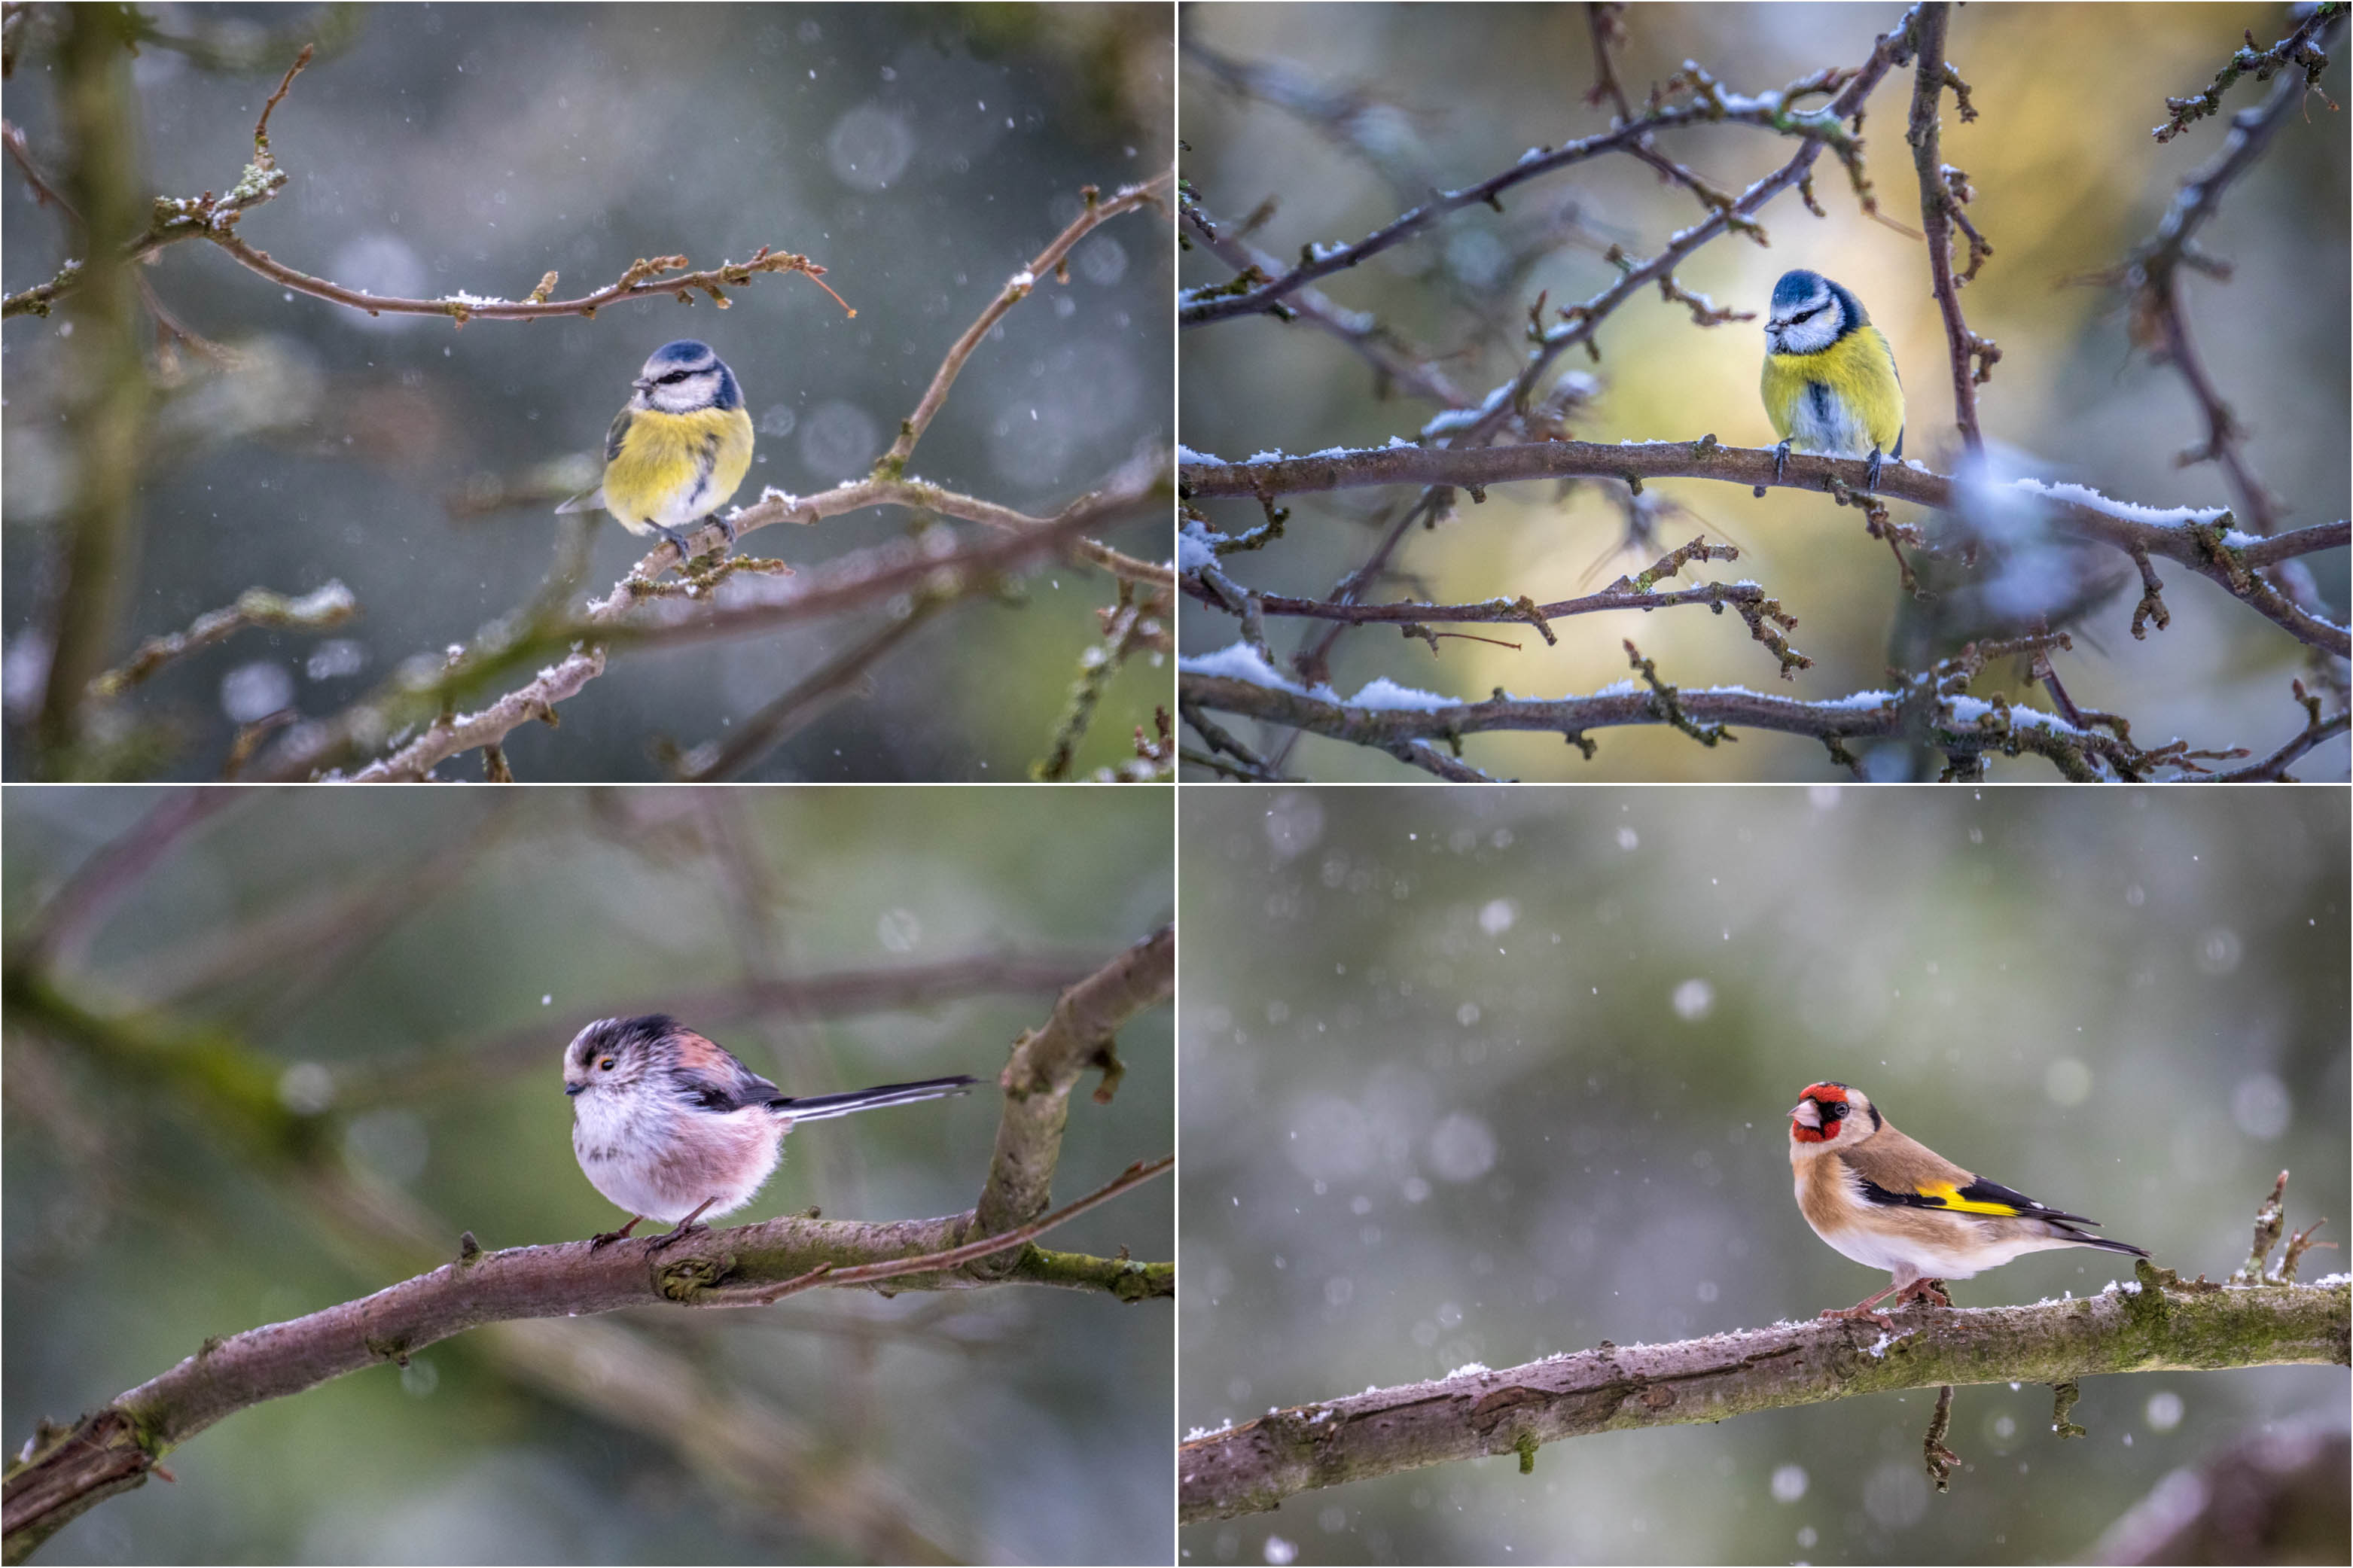 blue tit, long tailed tit, goldfinch